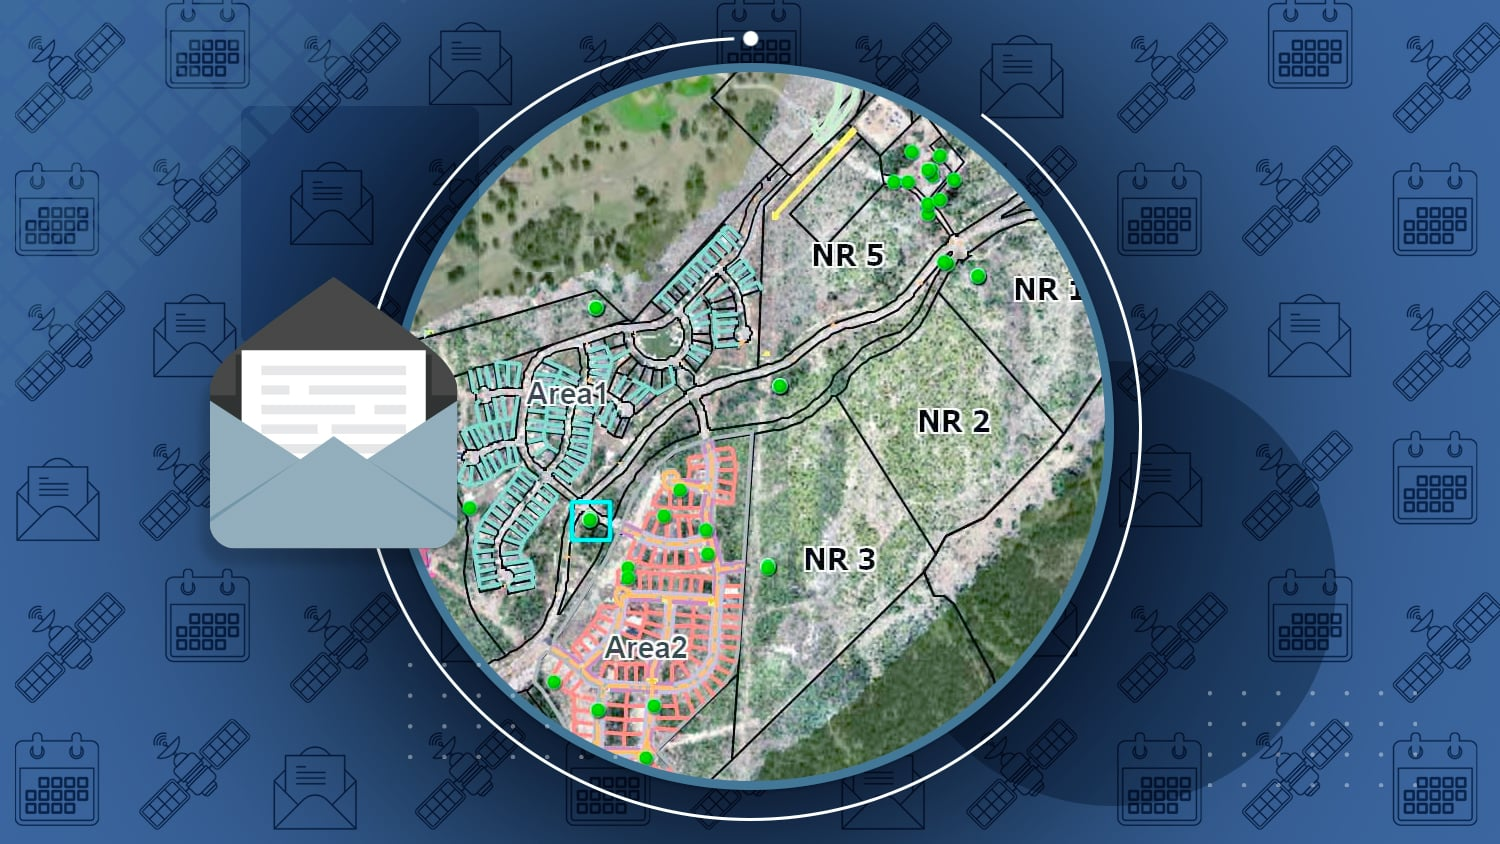 Eos Arrow GPS Newsletter Managing Construction with GNSS, UAVs & GIS